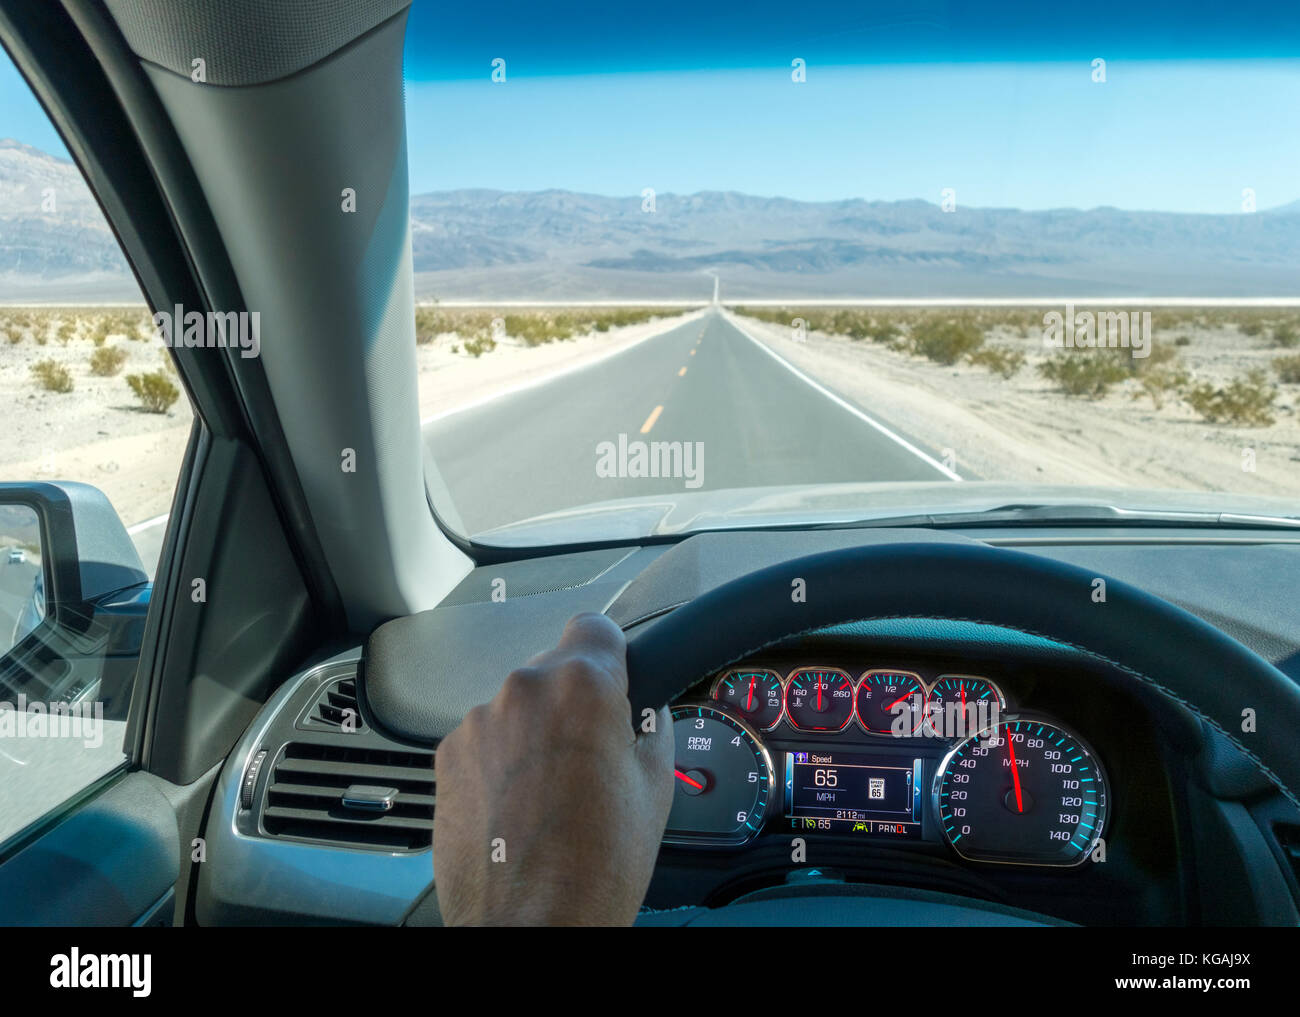 Death Valley Scenic Byway. Road trip driving point of view with dashboard and cruise control at 65mph. 65 mph speed - Stock Image